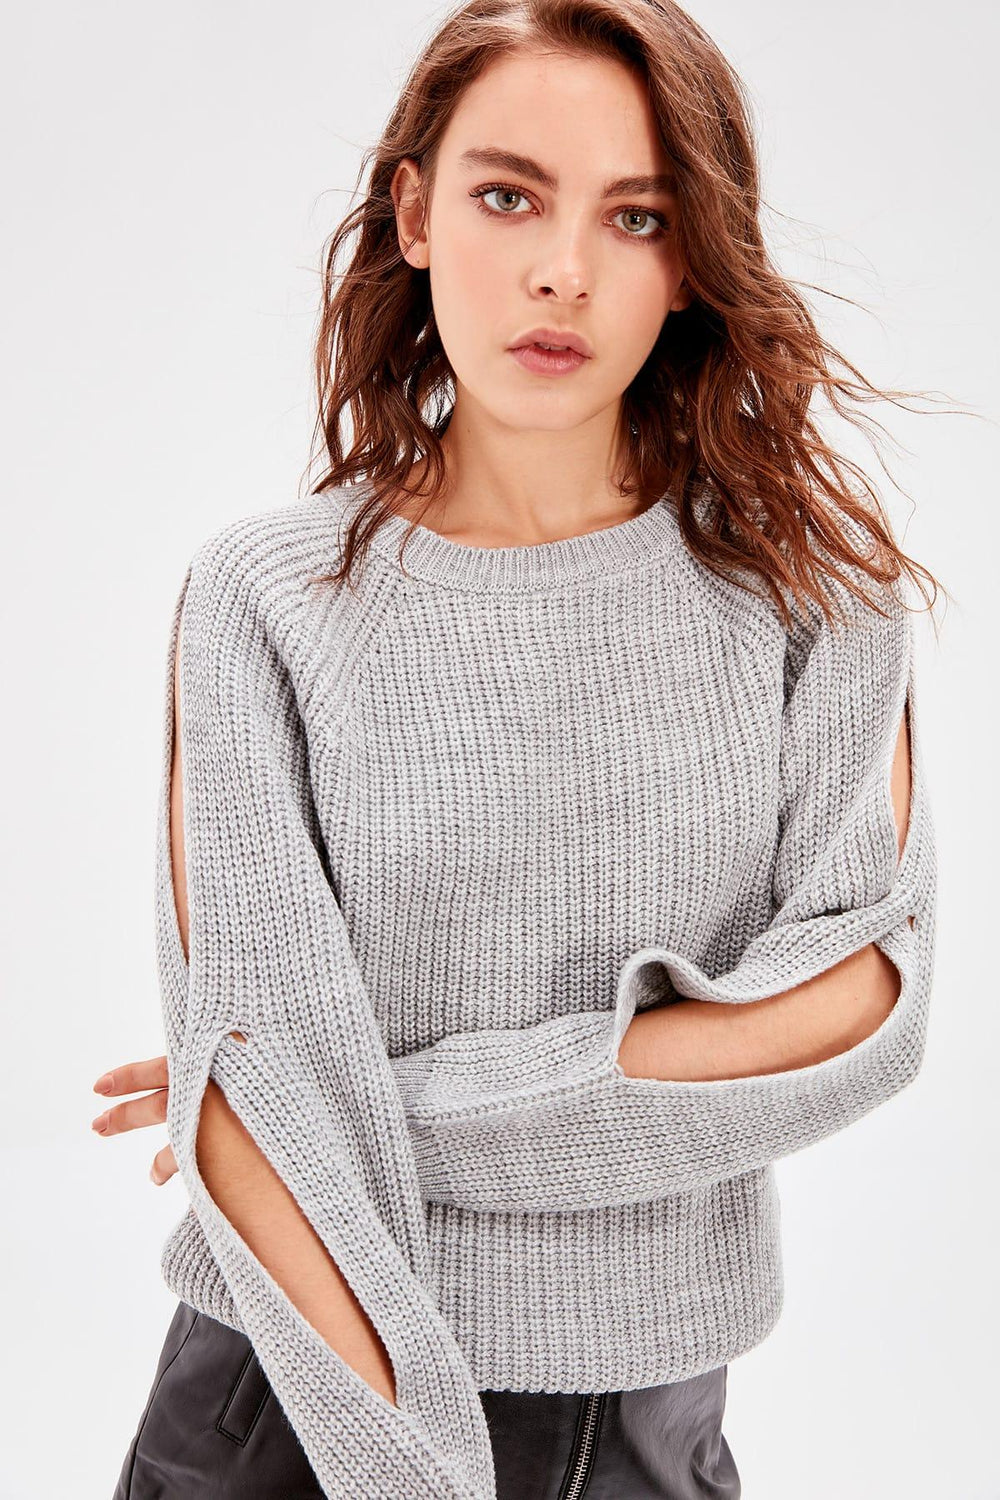 Gray Sleeve Detail Sweater - Top Maxy